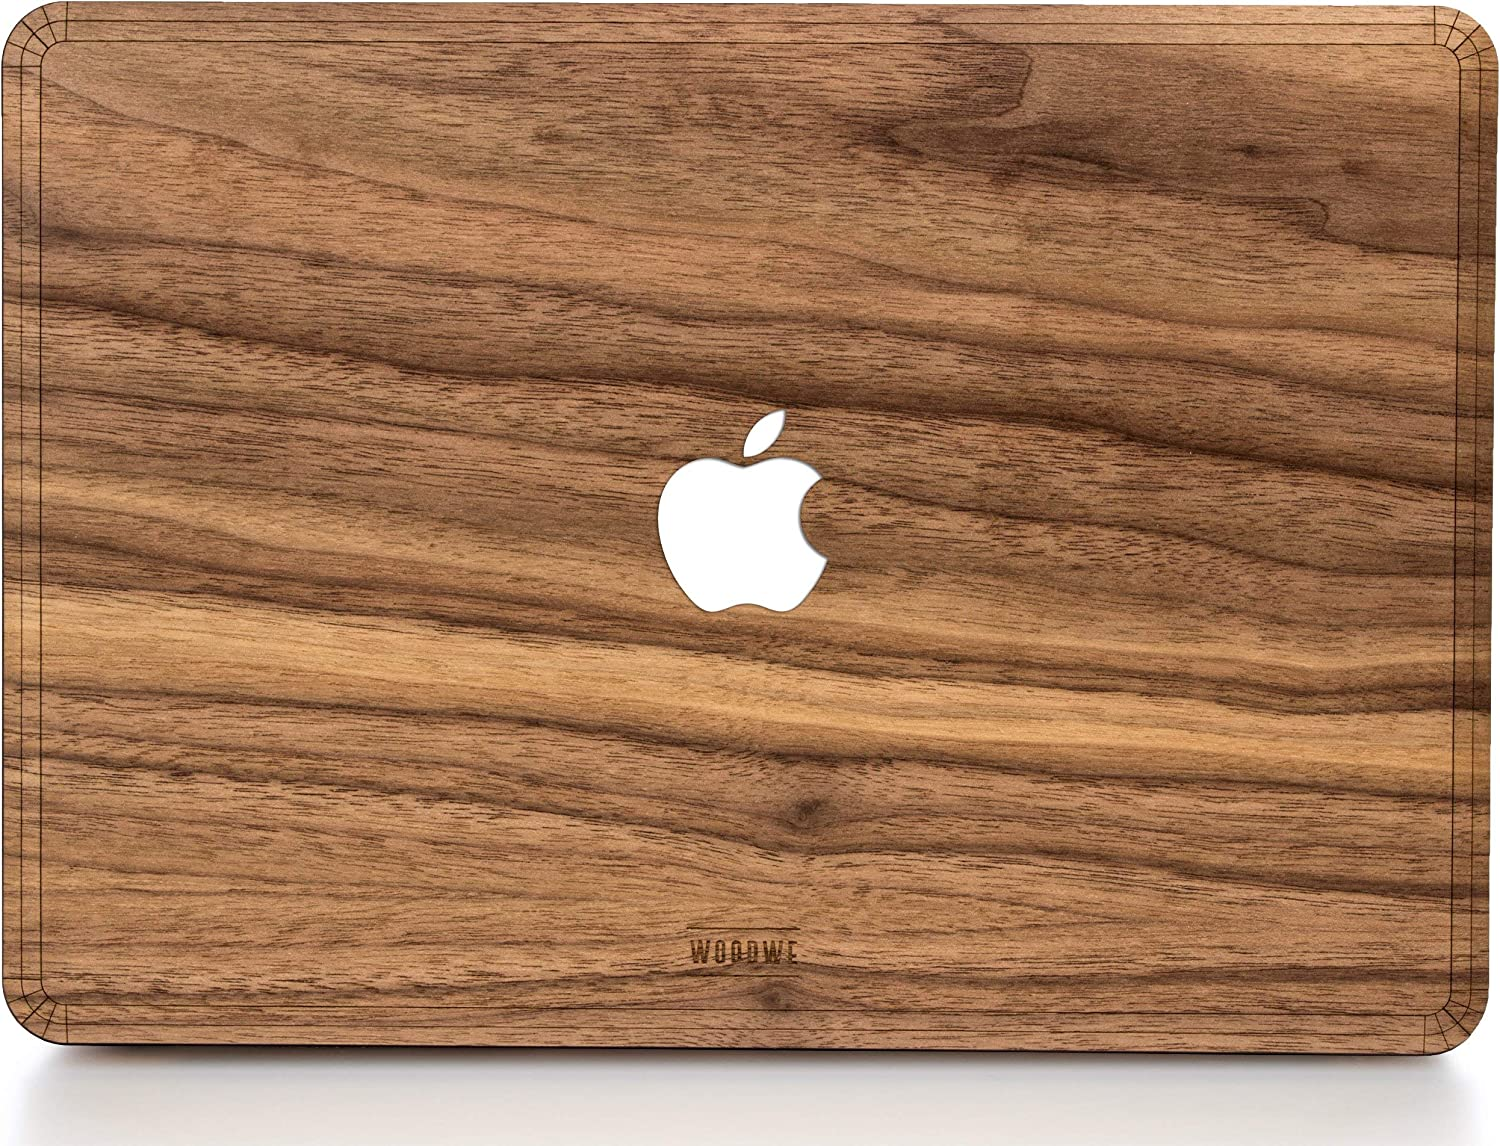 WOODWE MacBook Case Made of Real Wood | for Mac Pro 13 inch with Thunderbolt/Apple Logo is not White | Late 2016 – 2019 | Natural Walnut Wood